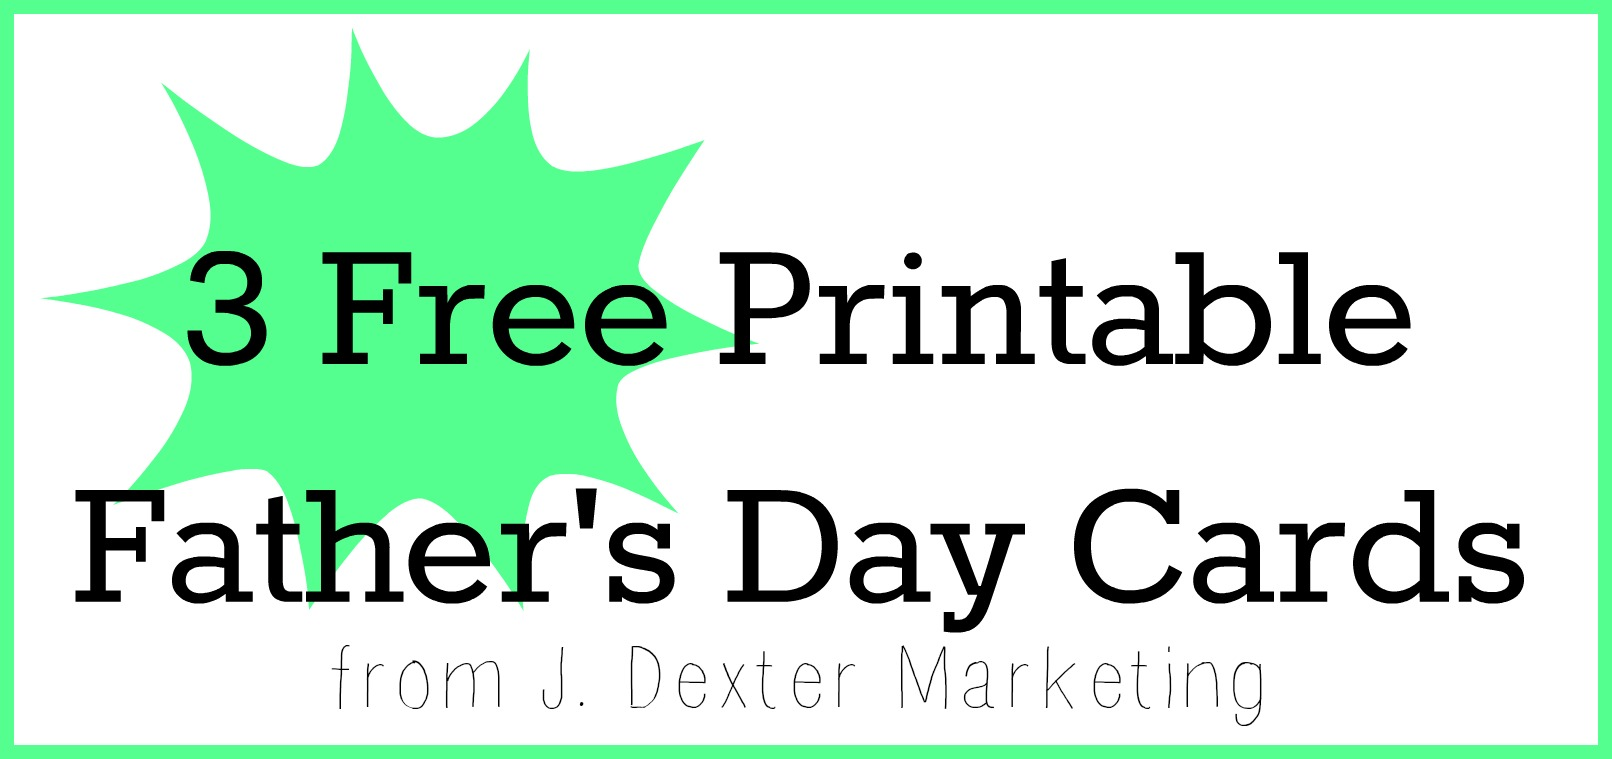 photo relating to Printable Fathers Day Cards known as 3 Absolutely free Printable Fathers Working day Playing cards my tremendous slo lifetime